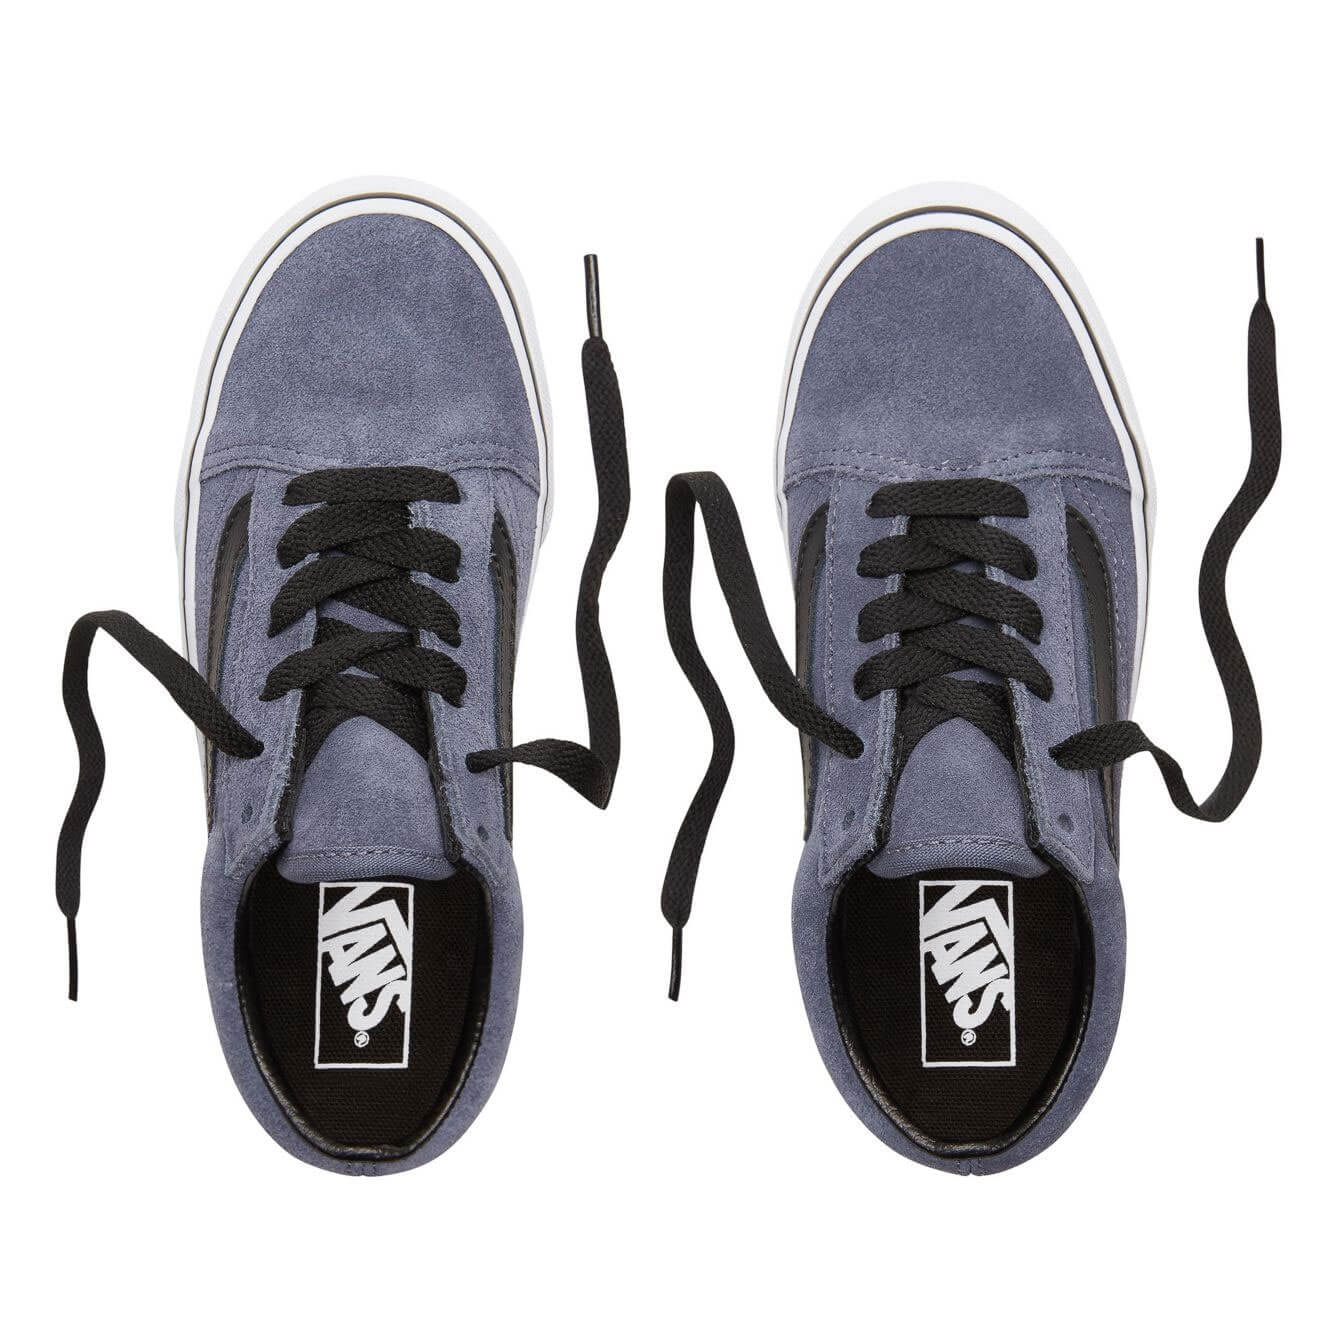 Vans Kids Old Skool V Shoes - Grisaille / Black (5+ yrs) - Top